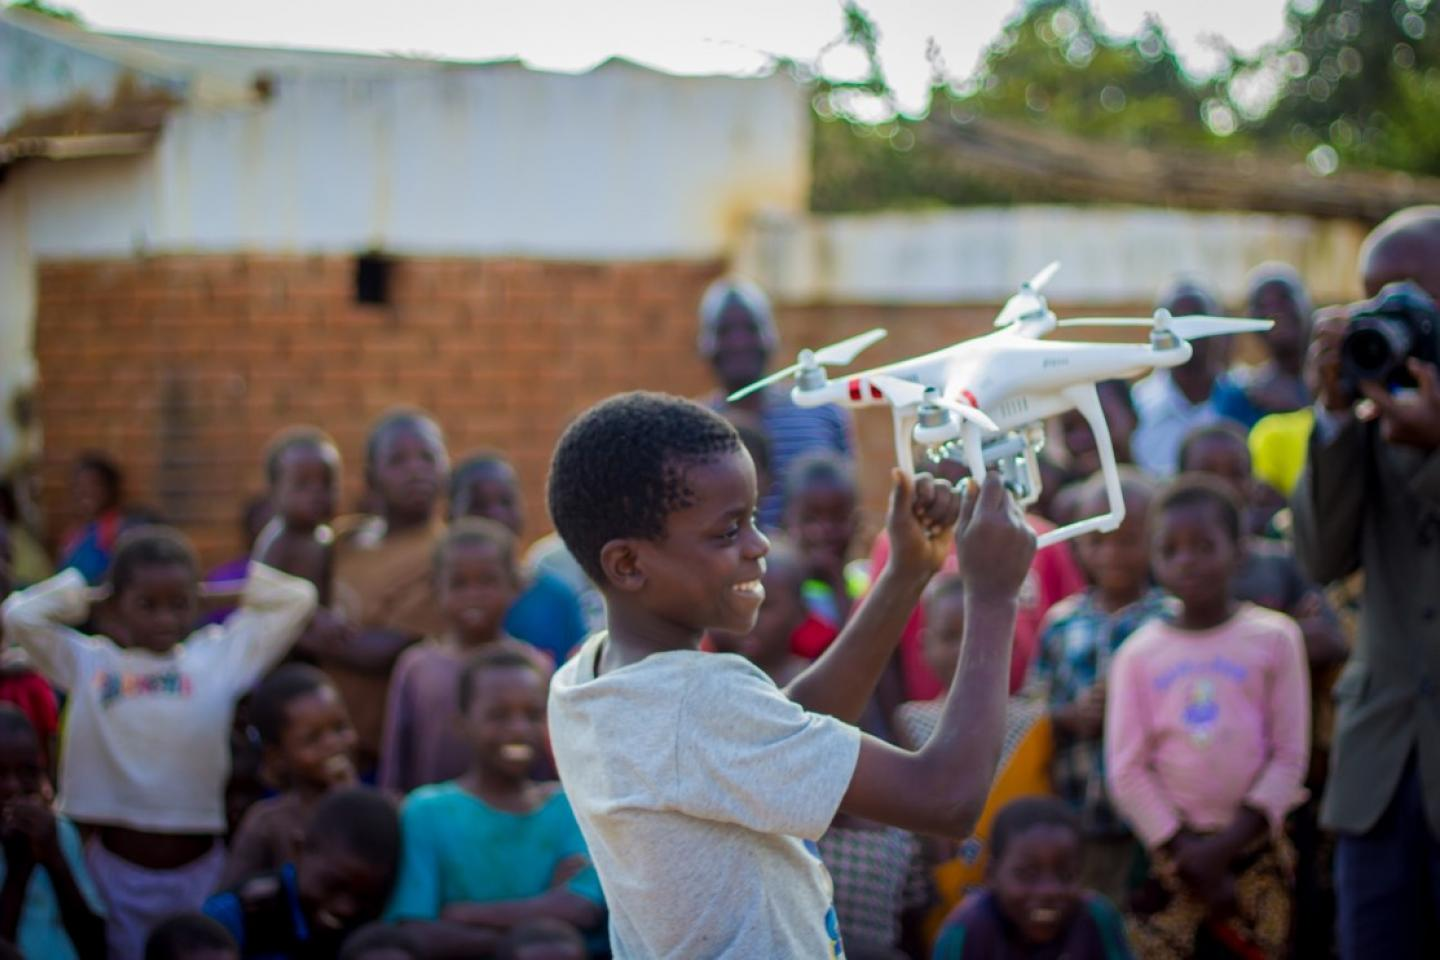 A boy carries a drone at Chisazima village in Kasungu